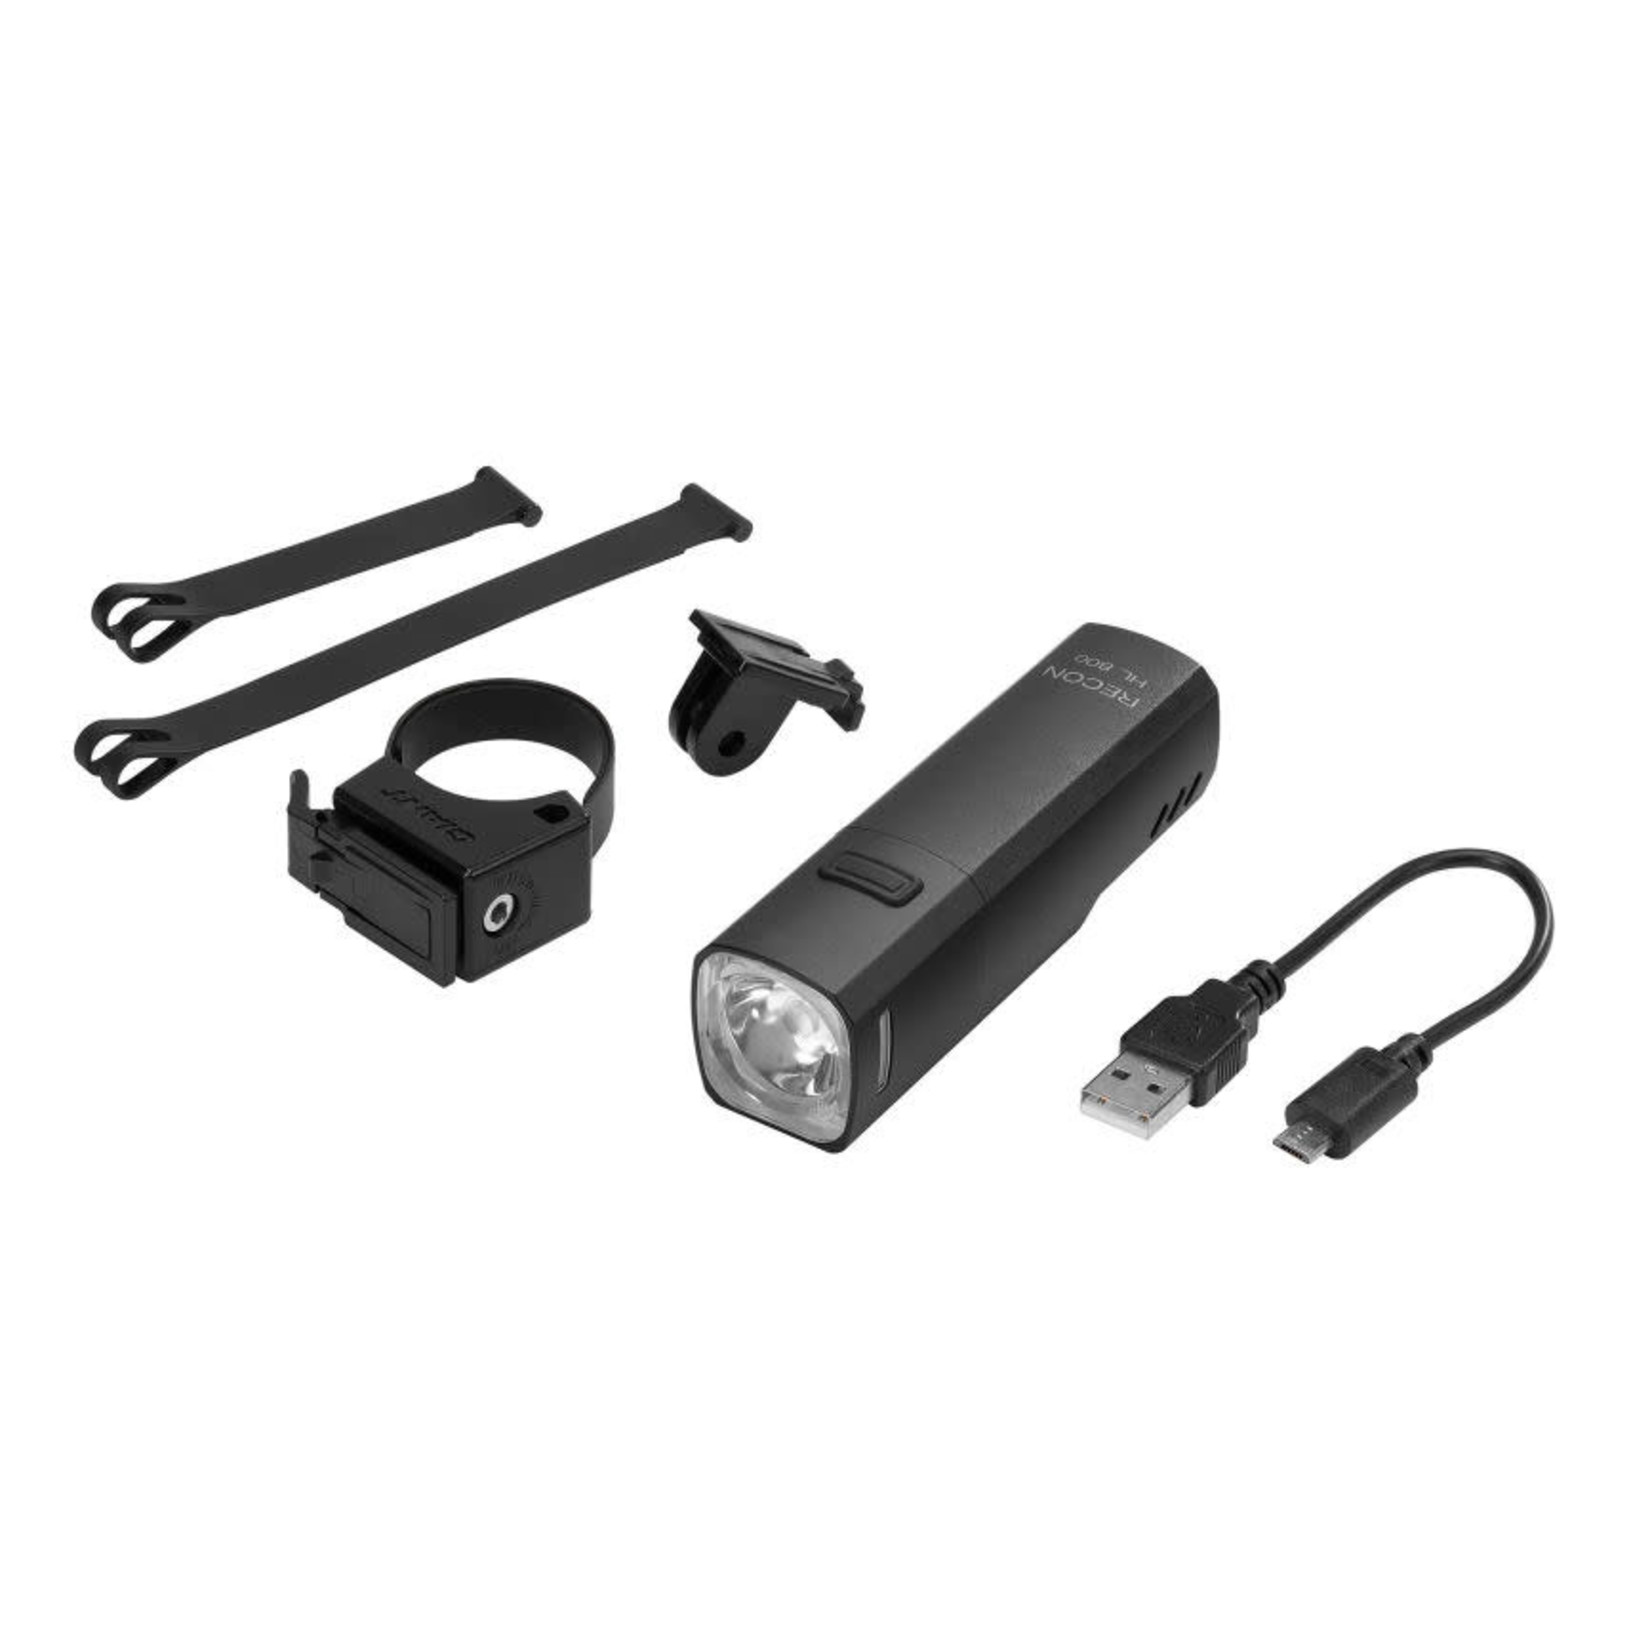 GIANT Giant Recon HL800 Front Light